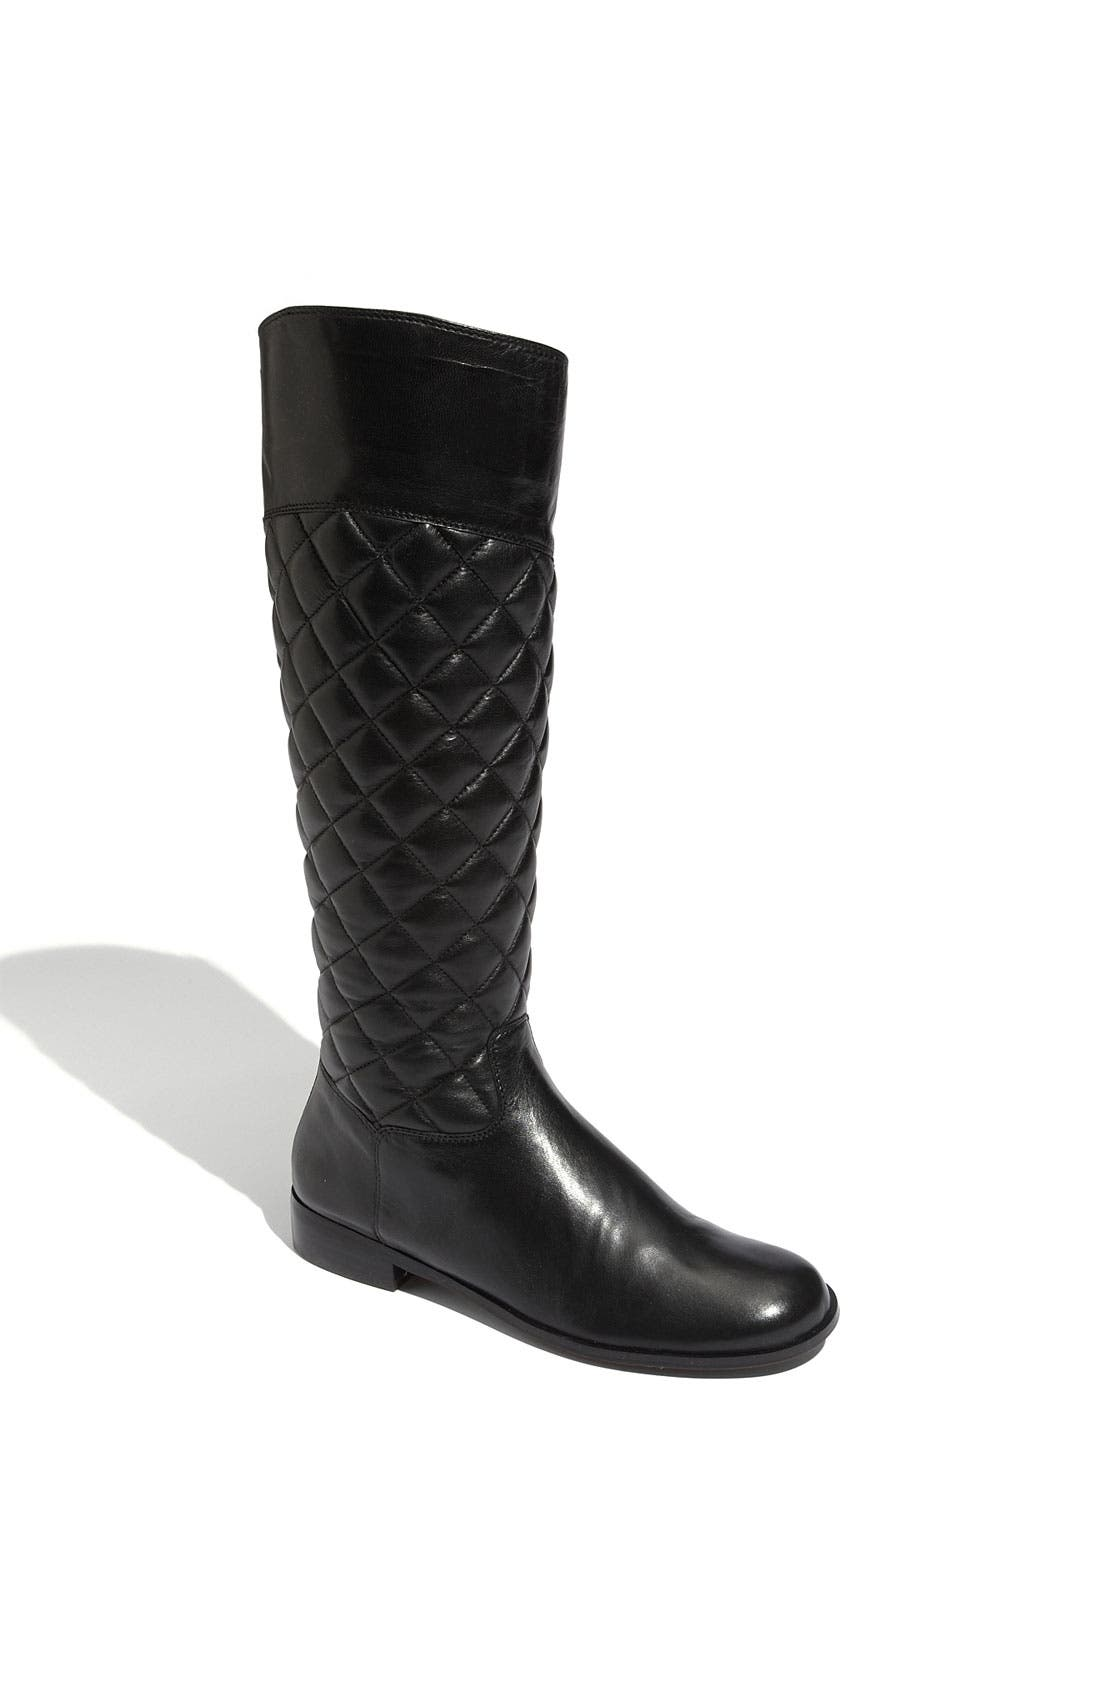 Alternate Image 1 Selected - Corso Como 'San Angelo' Quilted Boot